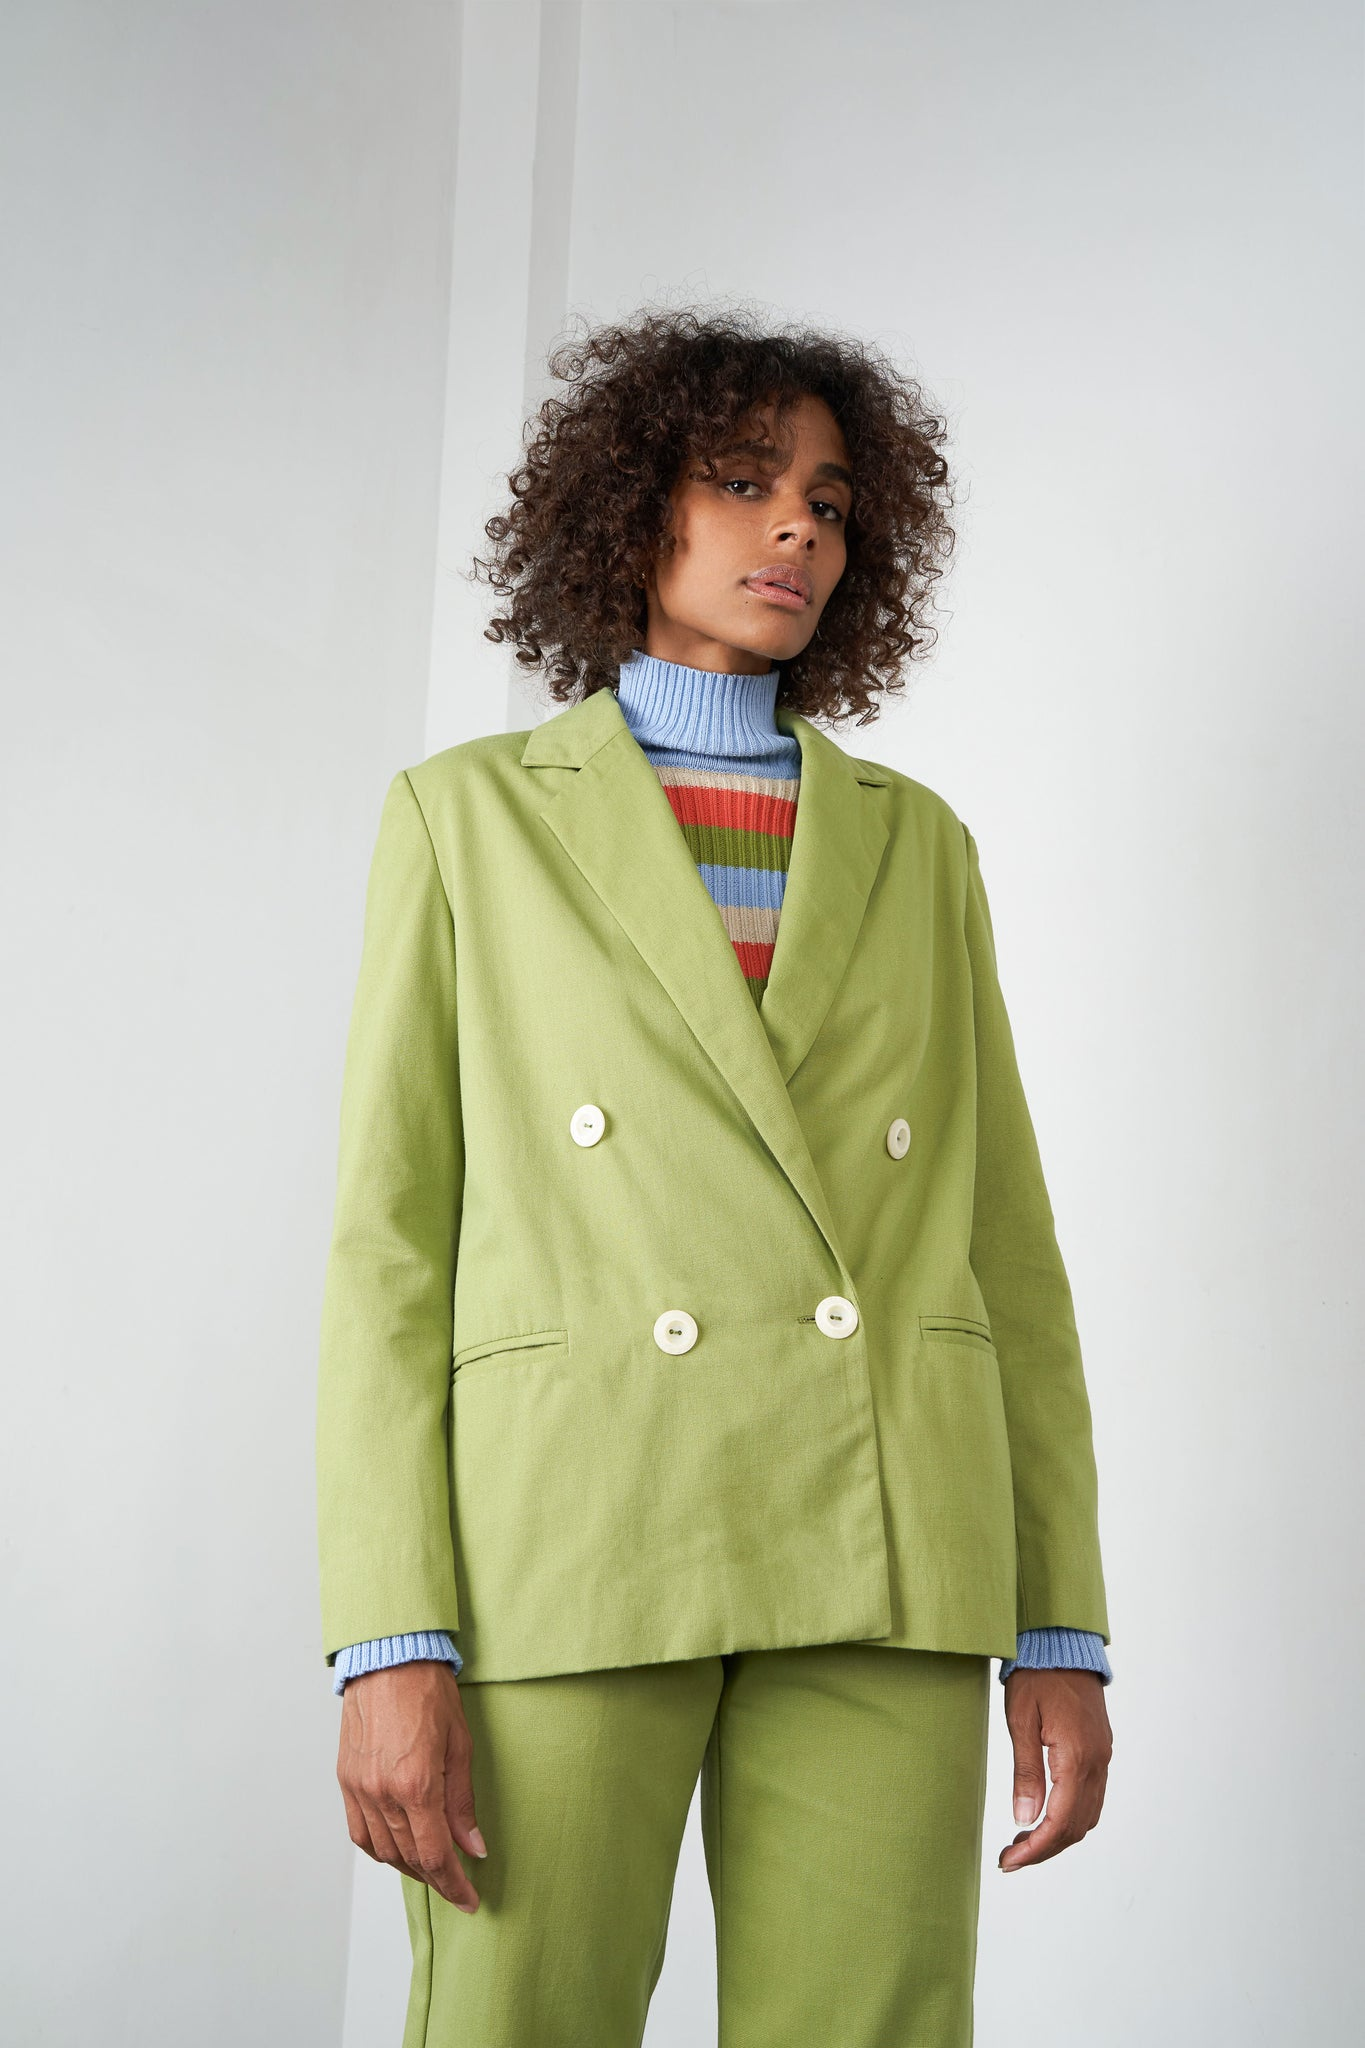 Arthur Apparel AW20 Womenswear Australian Fashion Oversized Cotton Blazer Jacket Green